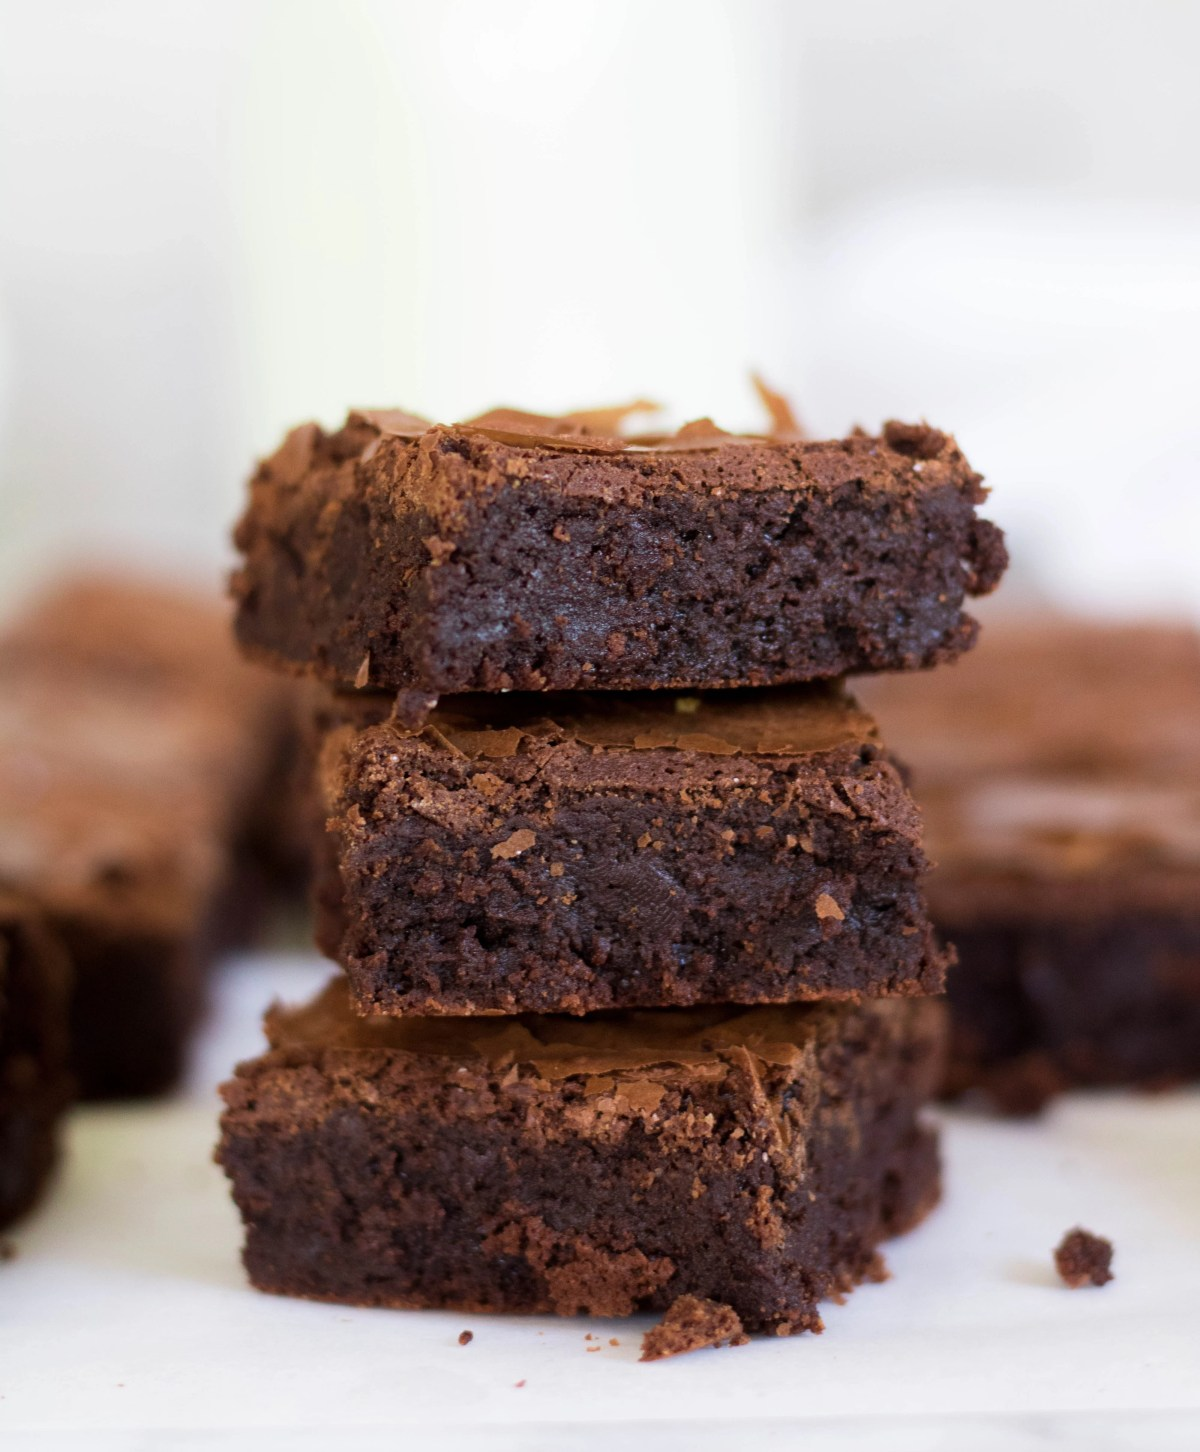 Bakery style brownies with no cocoa powder